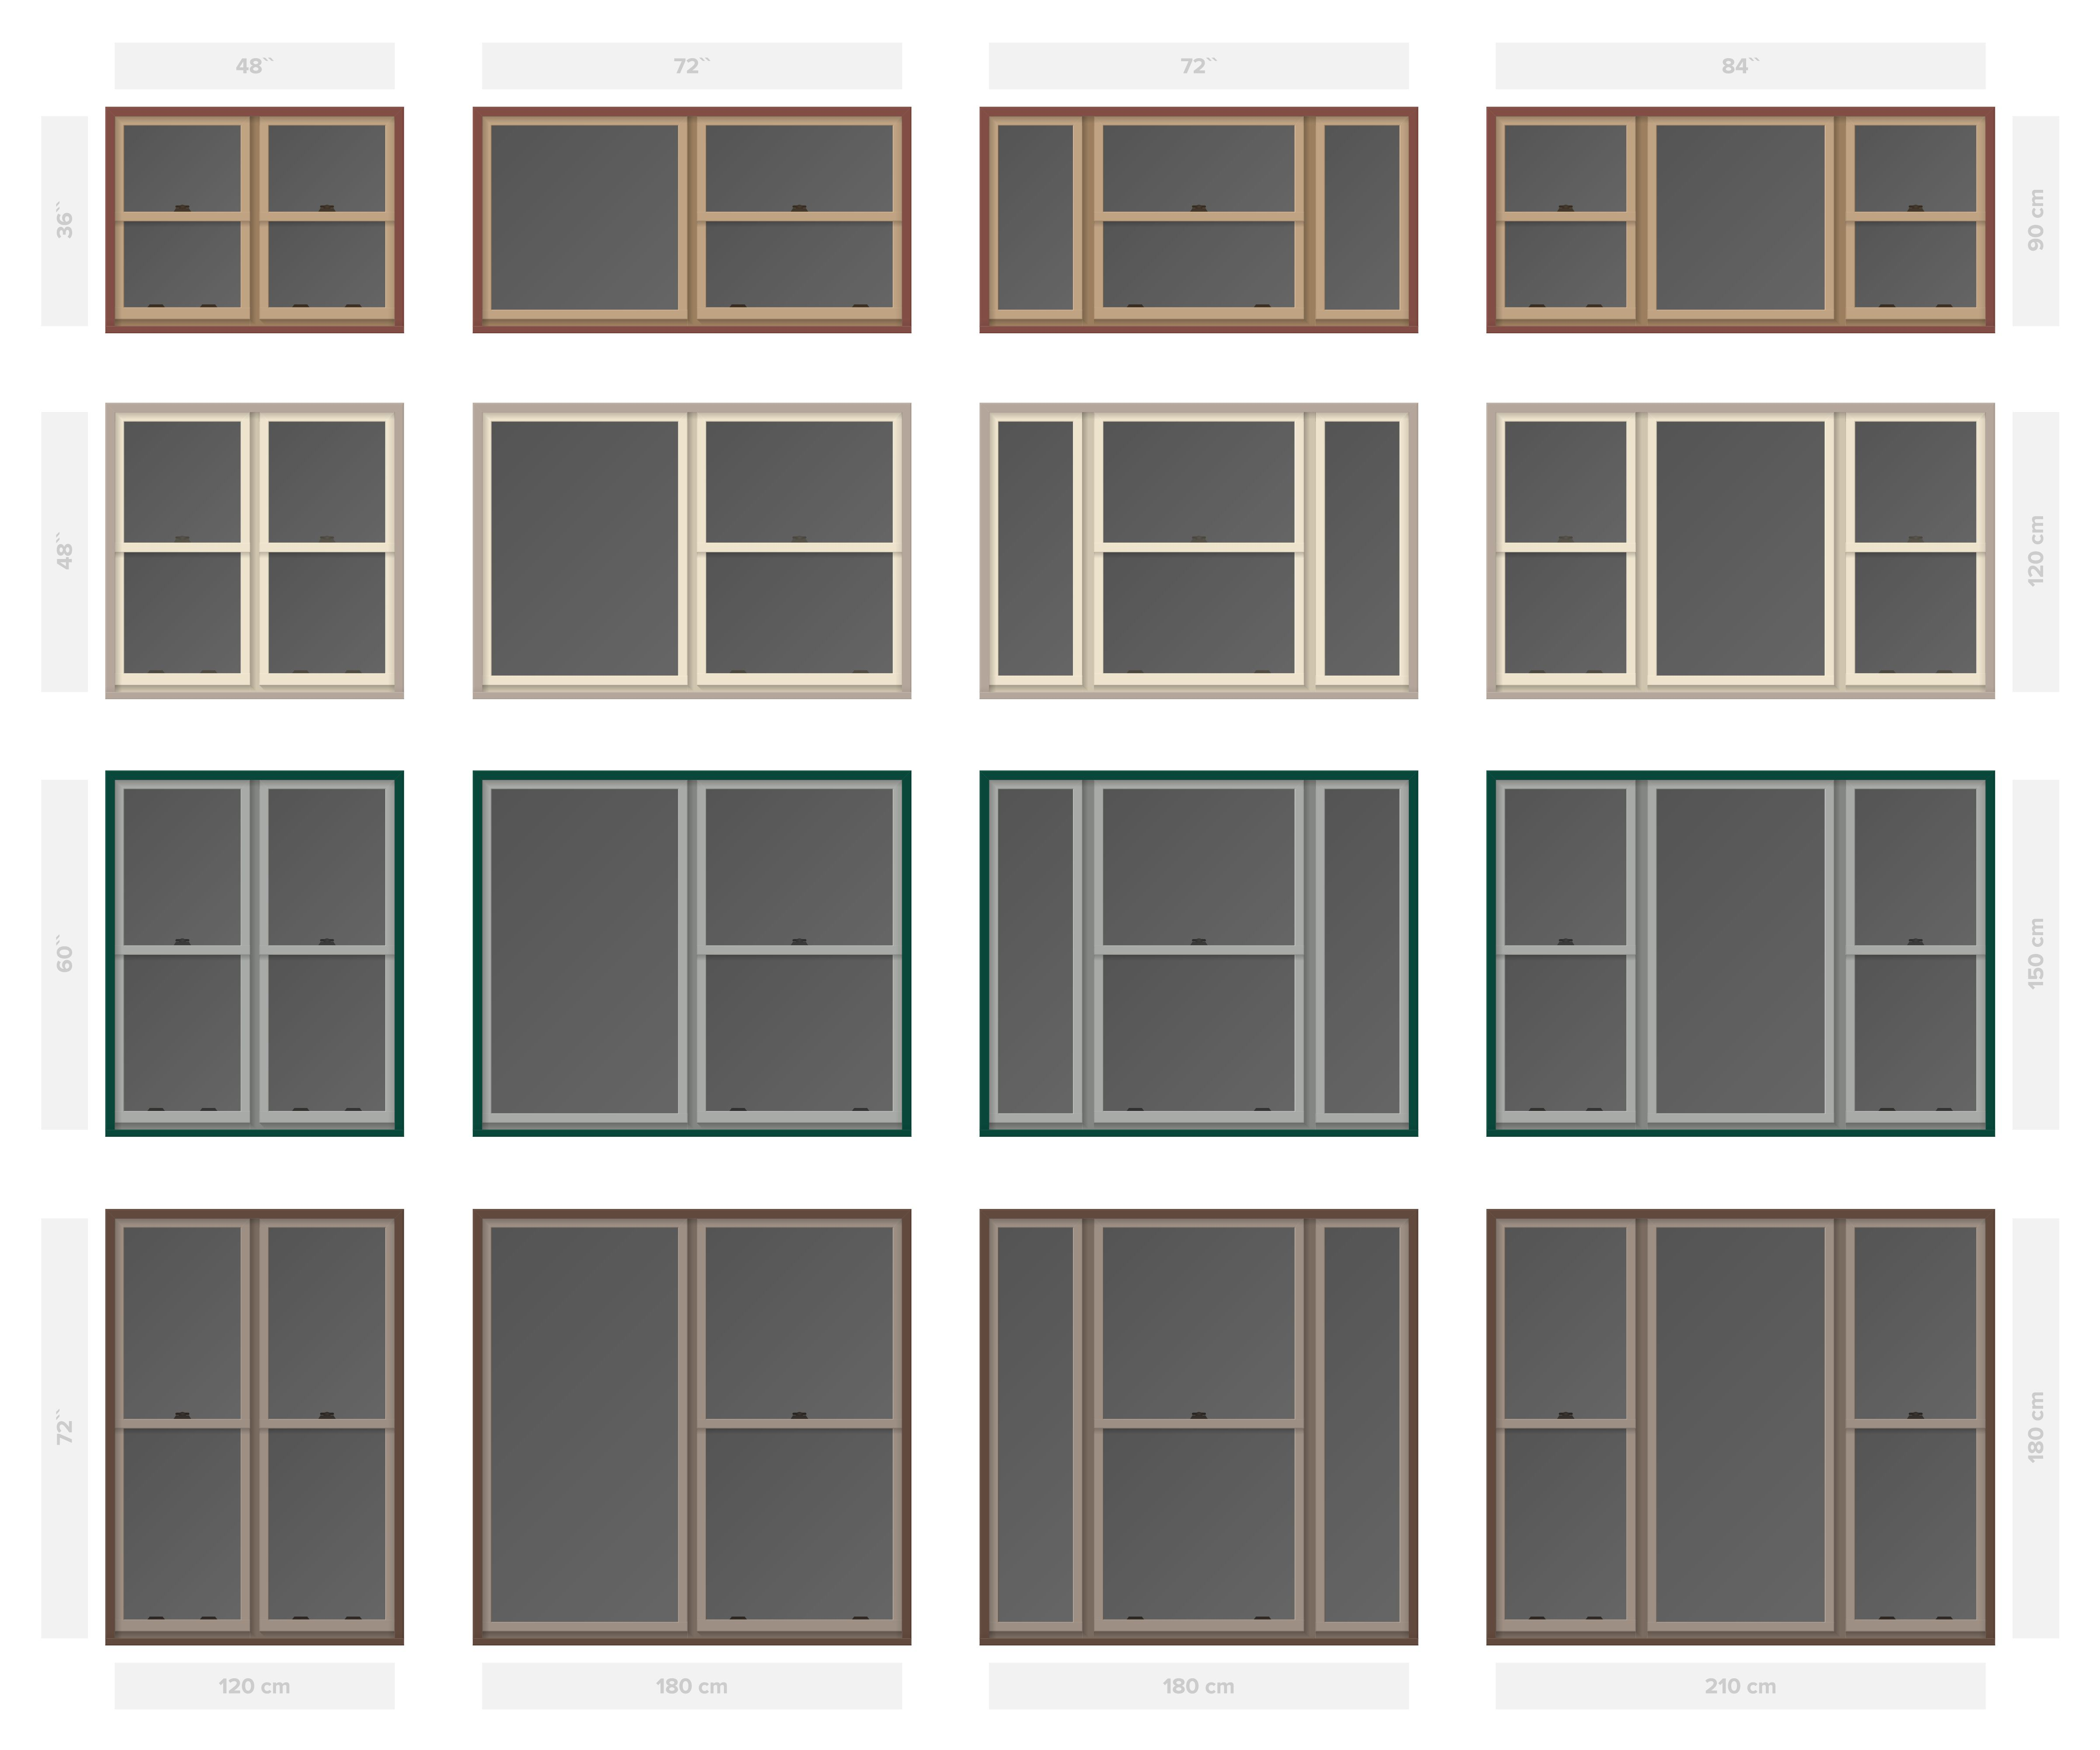 The 7 Common Types of Windows Used by Builders Window Canopy Designs Philippine Houses on house window chandelier, house window curtains, house window panel, house window tint, house window covers, house window awnings, house window hardware, house window beach, house window cap, house window shade, house window roof, house window forest, house tarps, house tent, house fabric, house window frame, house window paint, house window platform, house window wall, house window glass,